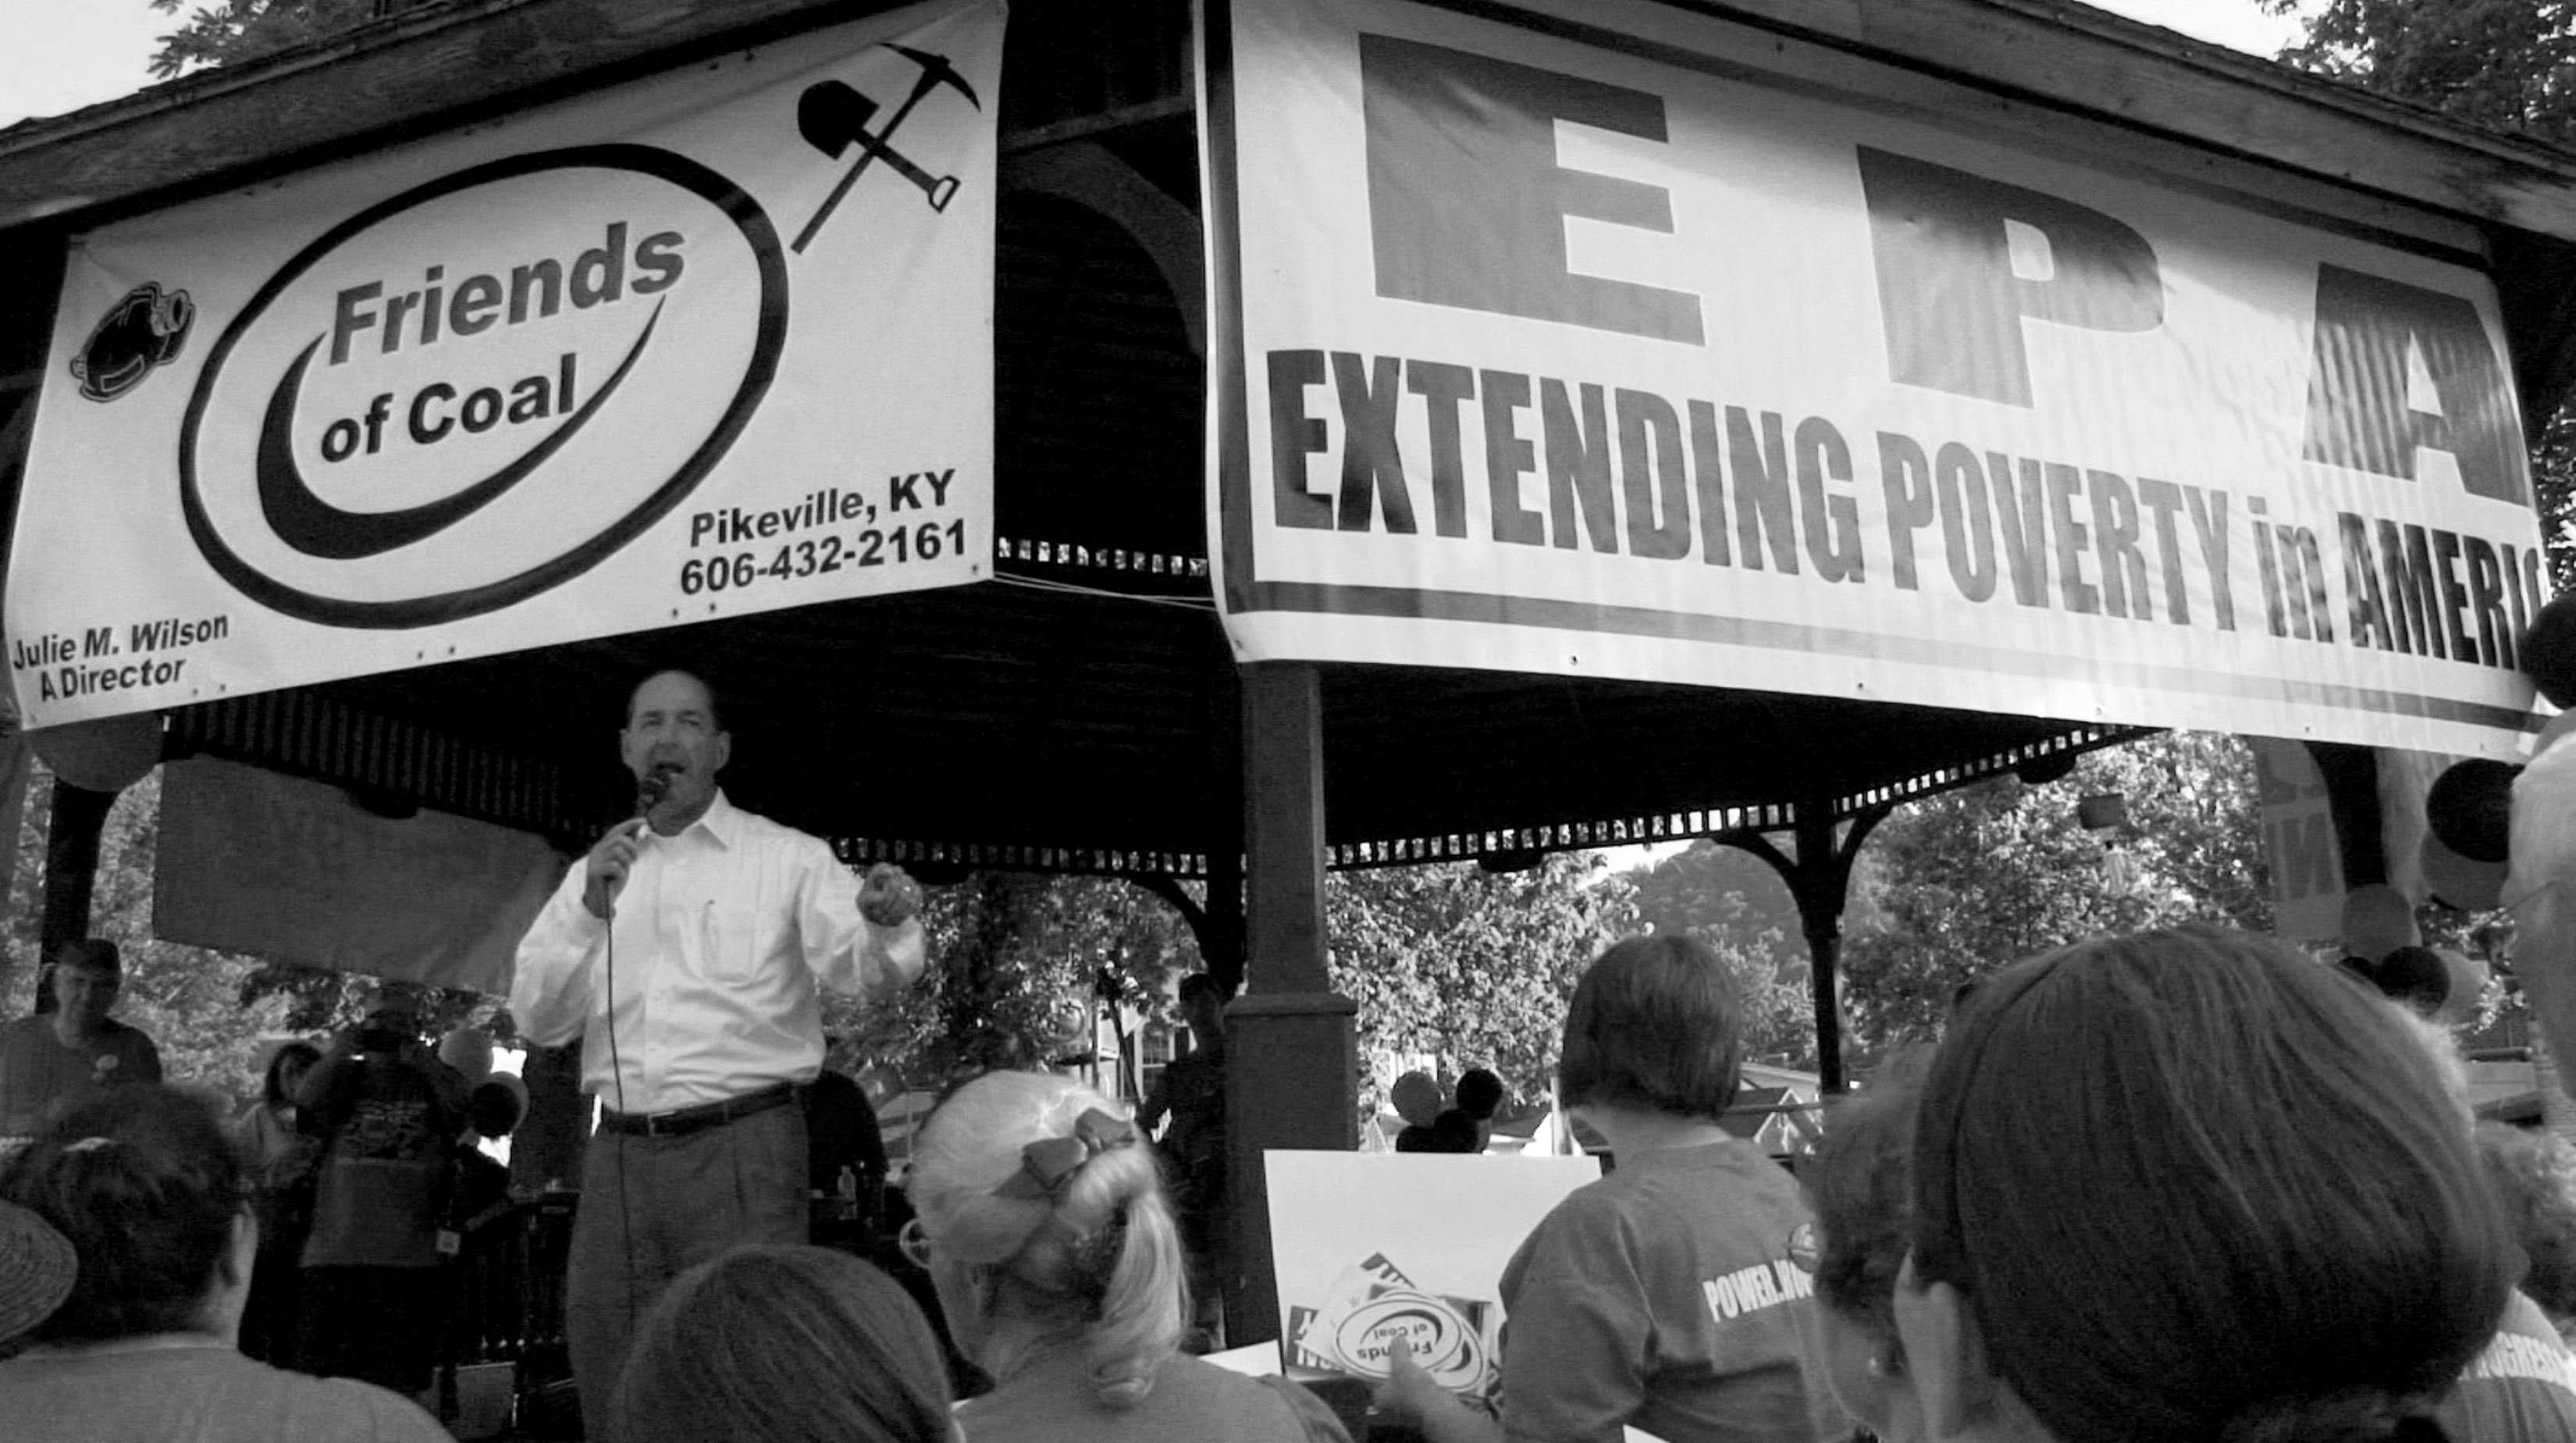 Figure 1. Rocky Adkins, then Democratic House majority leader for the Kentucky House of Representatives, speaking at a pro- coal rally in 2012